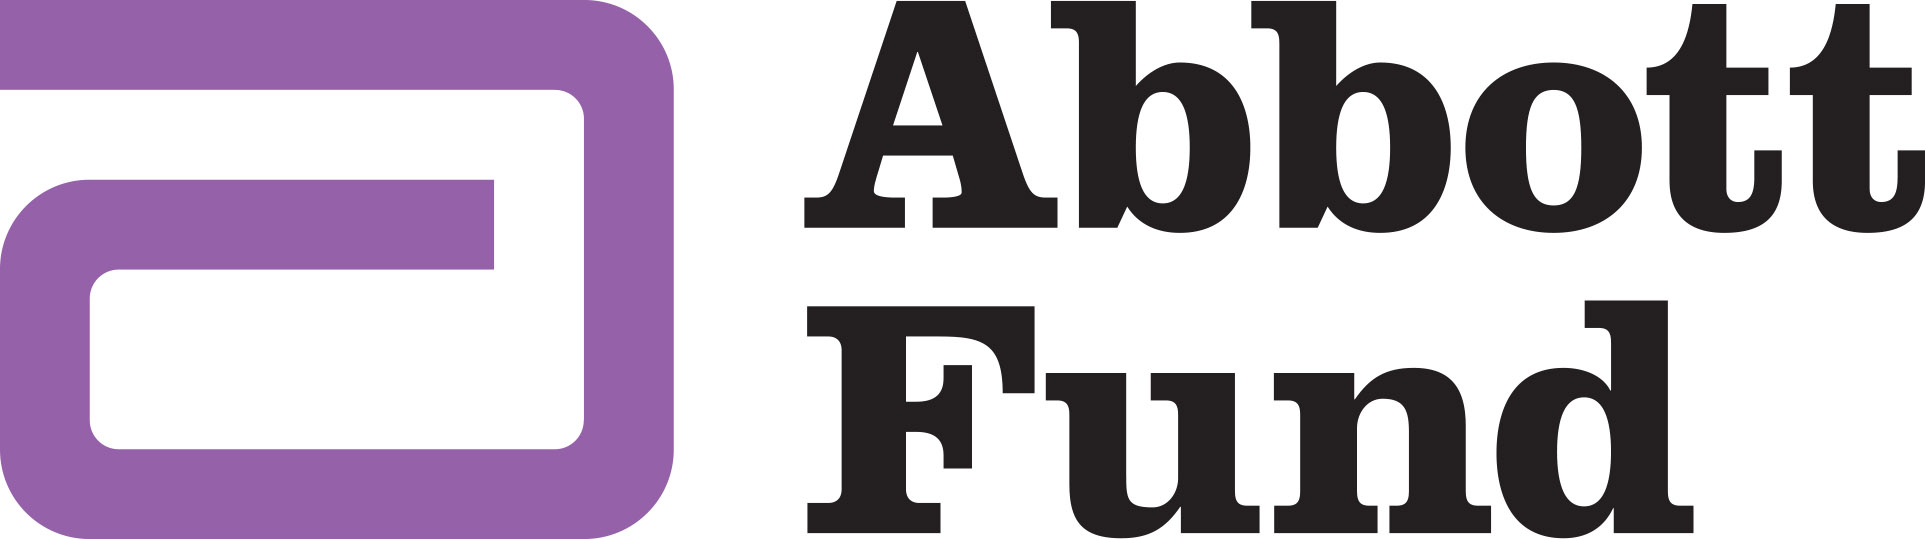 Abbott Fund.jpg